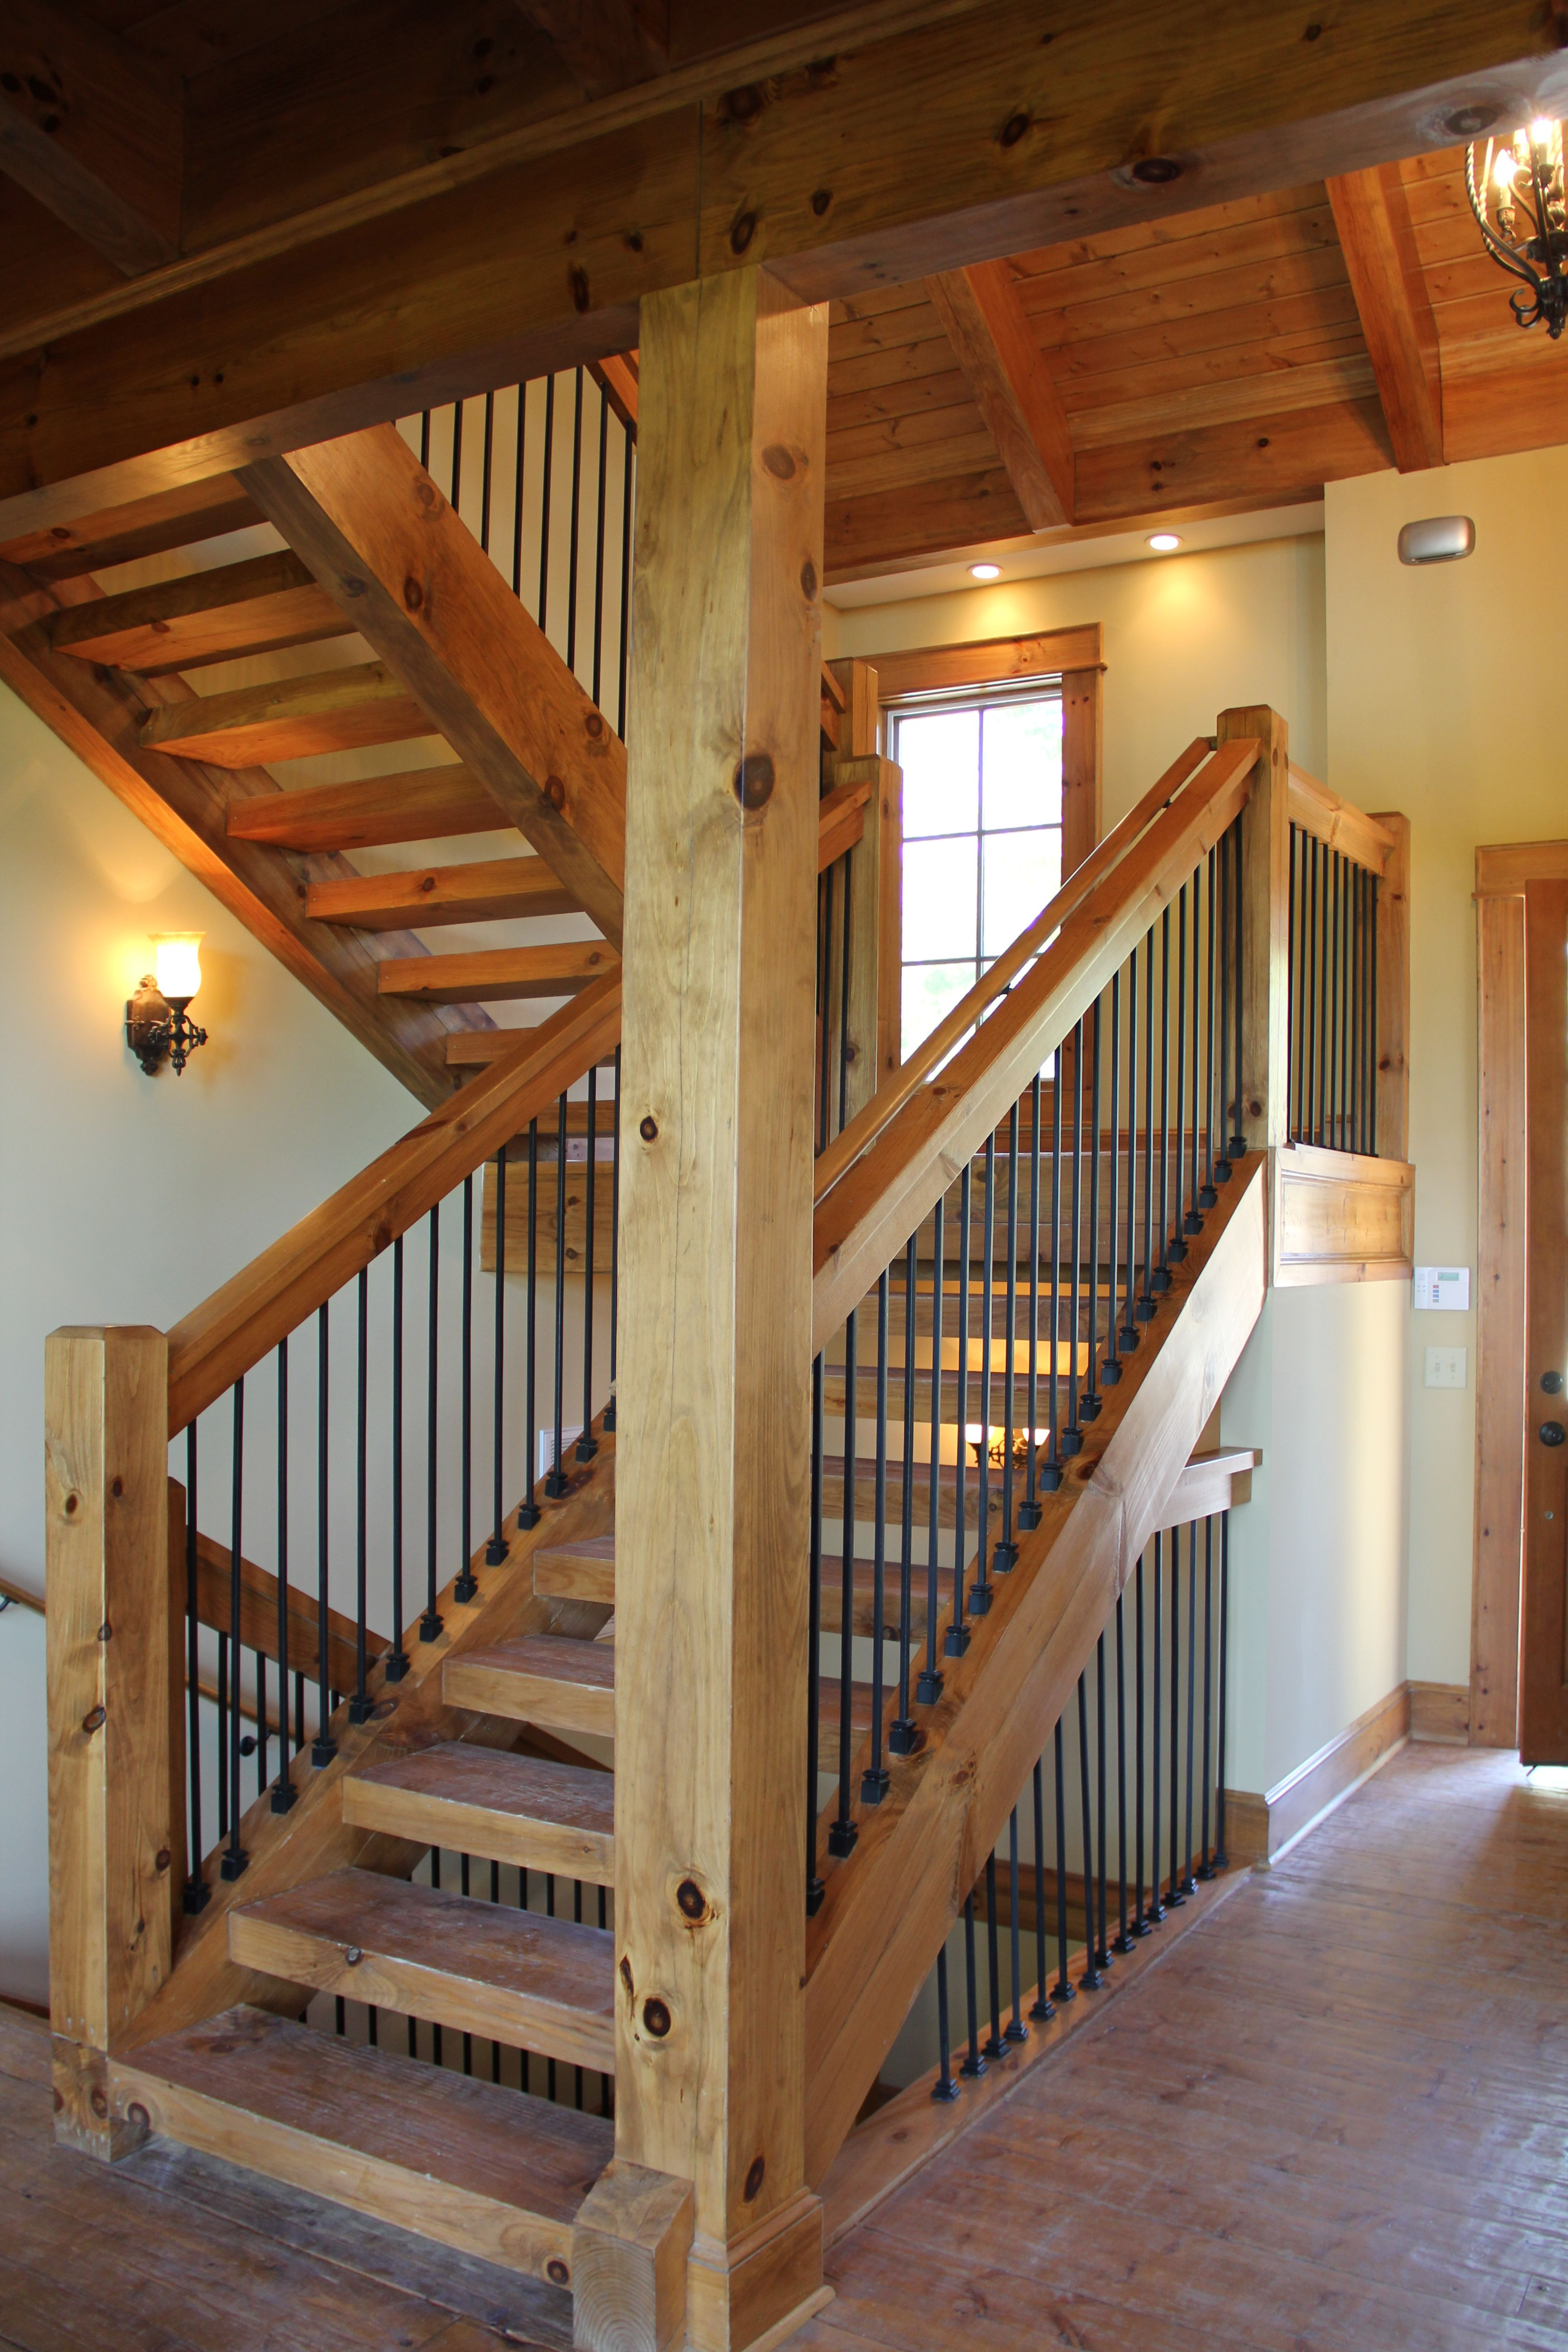 Slippery Wood Stairs Post And Beam Stairway | Vpc Projects | Pinterest